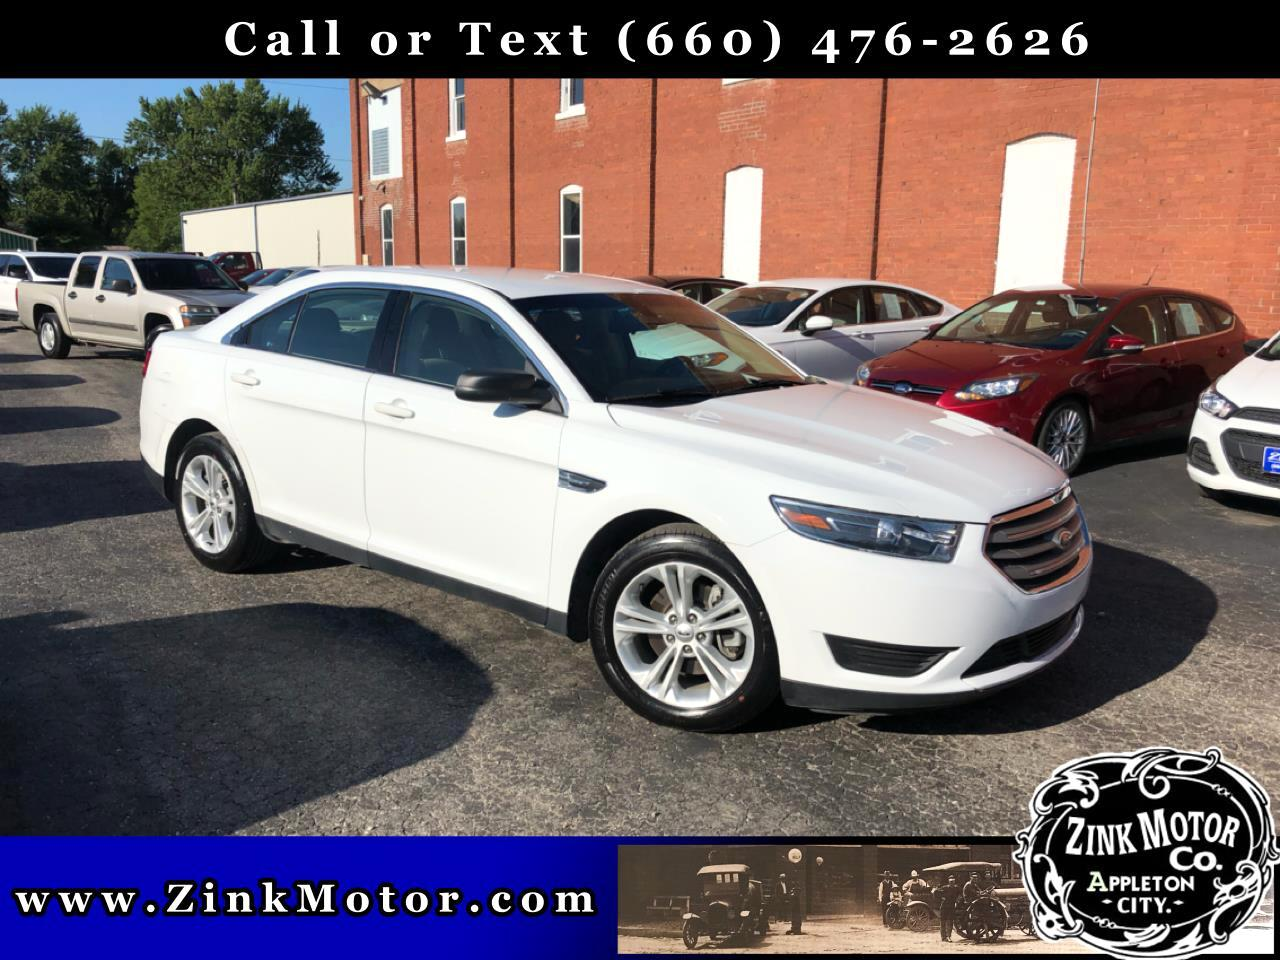 Ford Taurus 4dr Sdn SE 2015